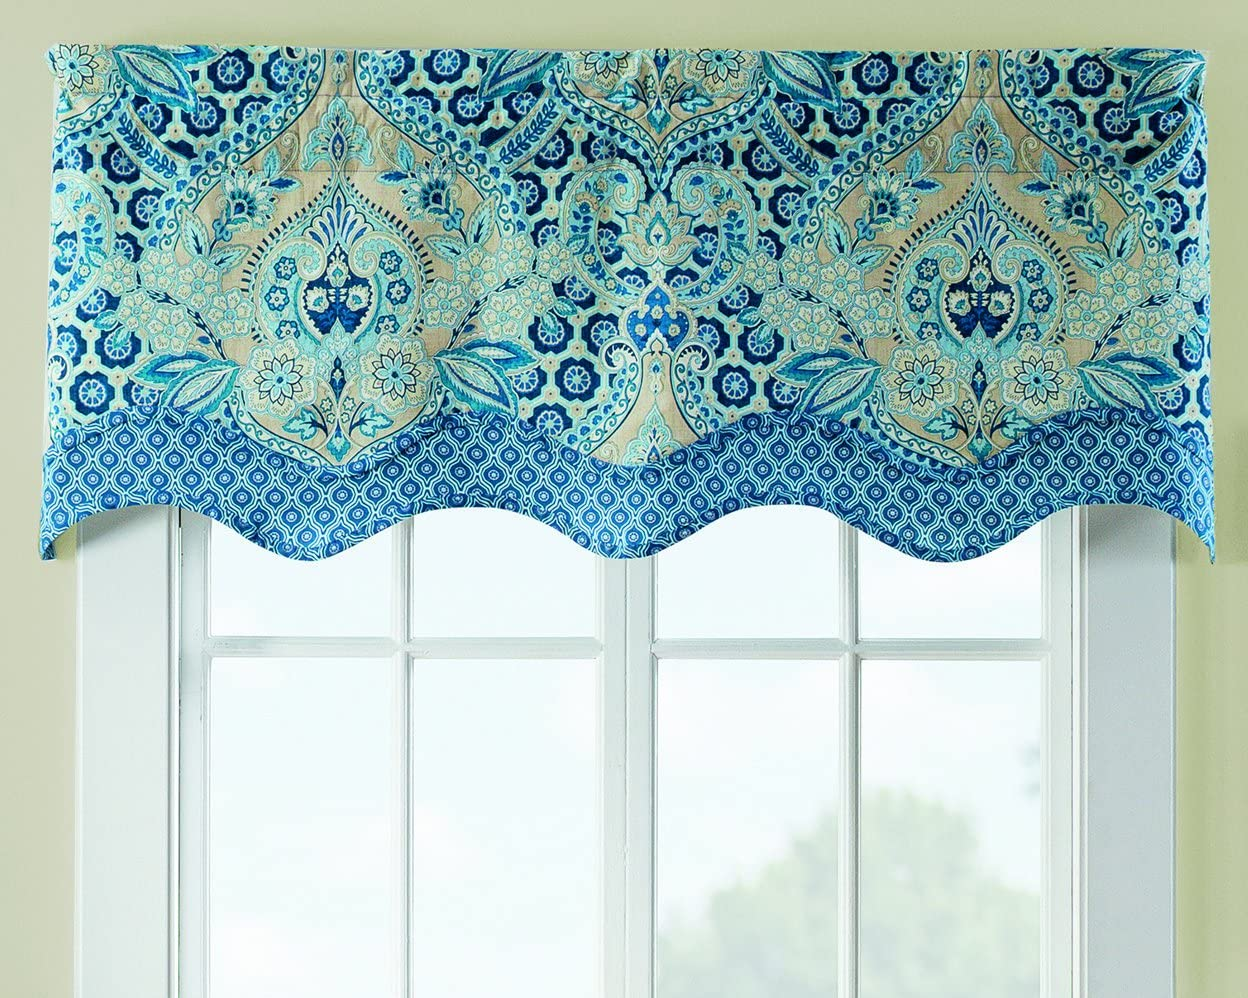 Waverly Valances for Windows – Moonlit Shadows 52 x 18 Short Curtain Valance Small Window Curtains Bathroom, Living Room and Kitchens, Lapis